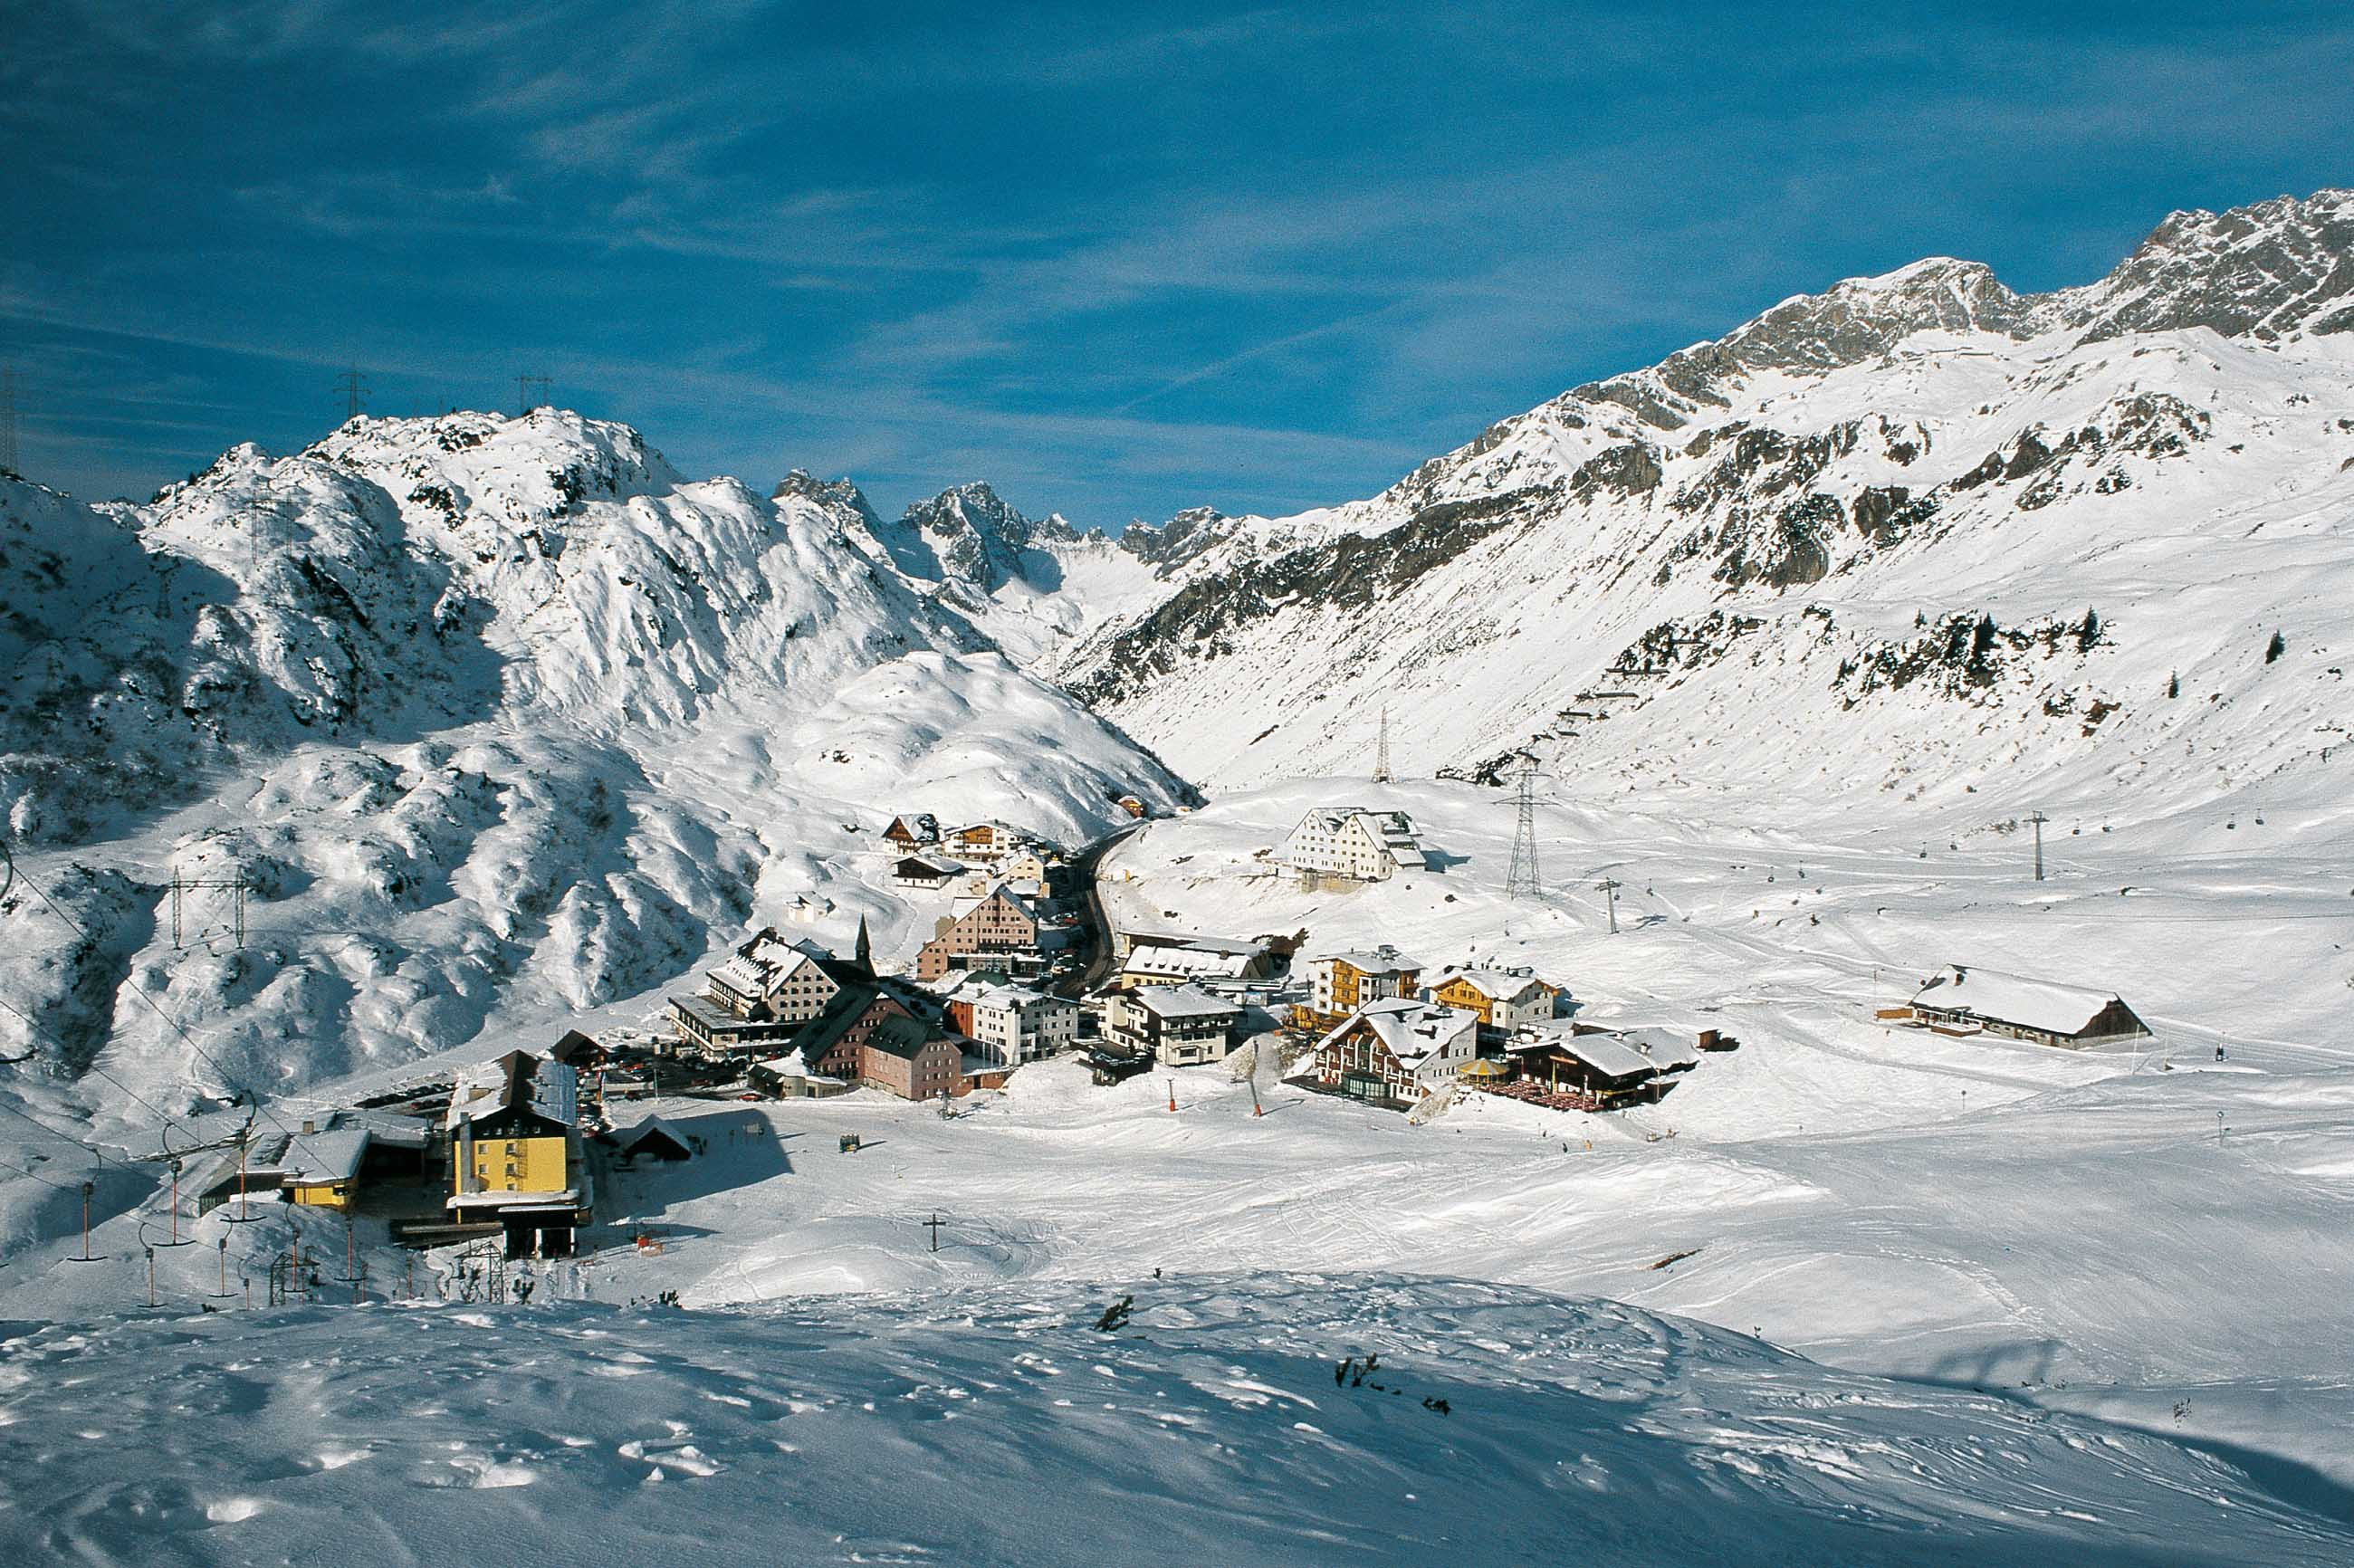 heli skiing bc prices with 380 St Christoph on Galleries in addition Heliski Lodges besides What It Means To Back Off Caution In The Mountains together with 2018 Last Frontier Fan Videos additionally Sun Peaks Grand Hotel.